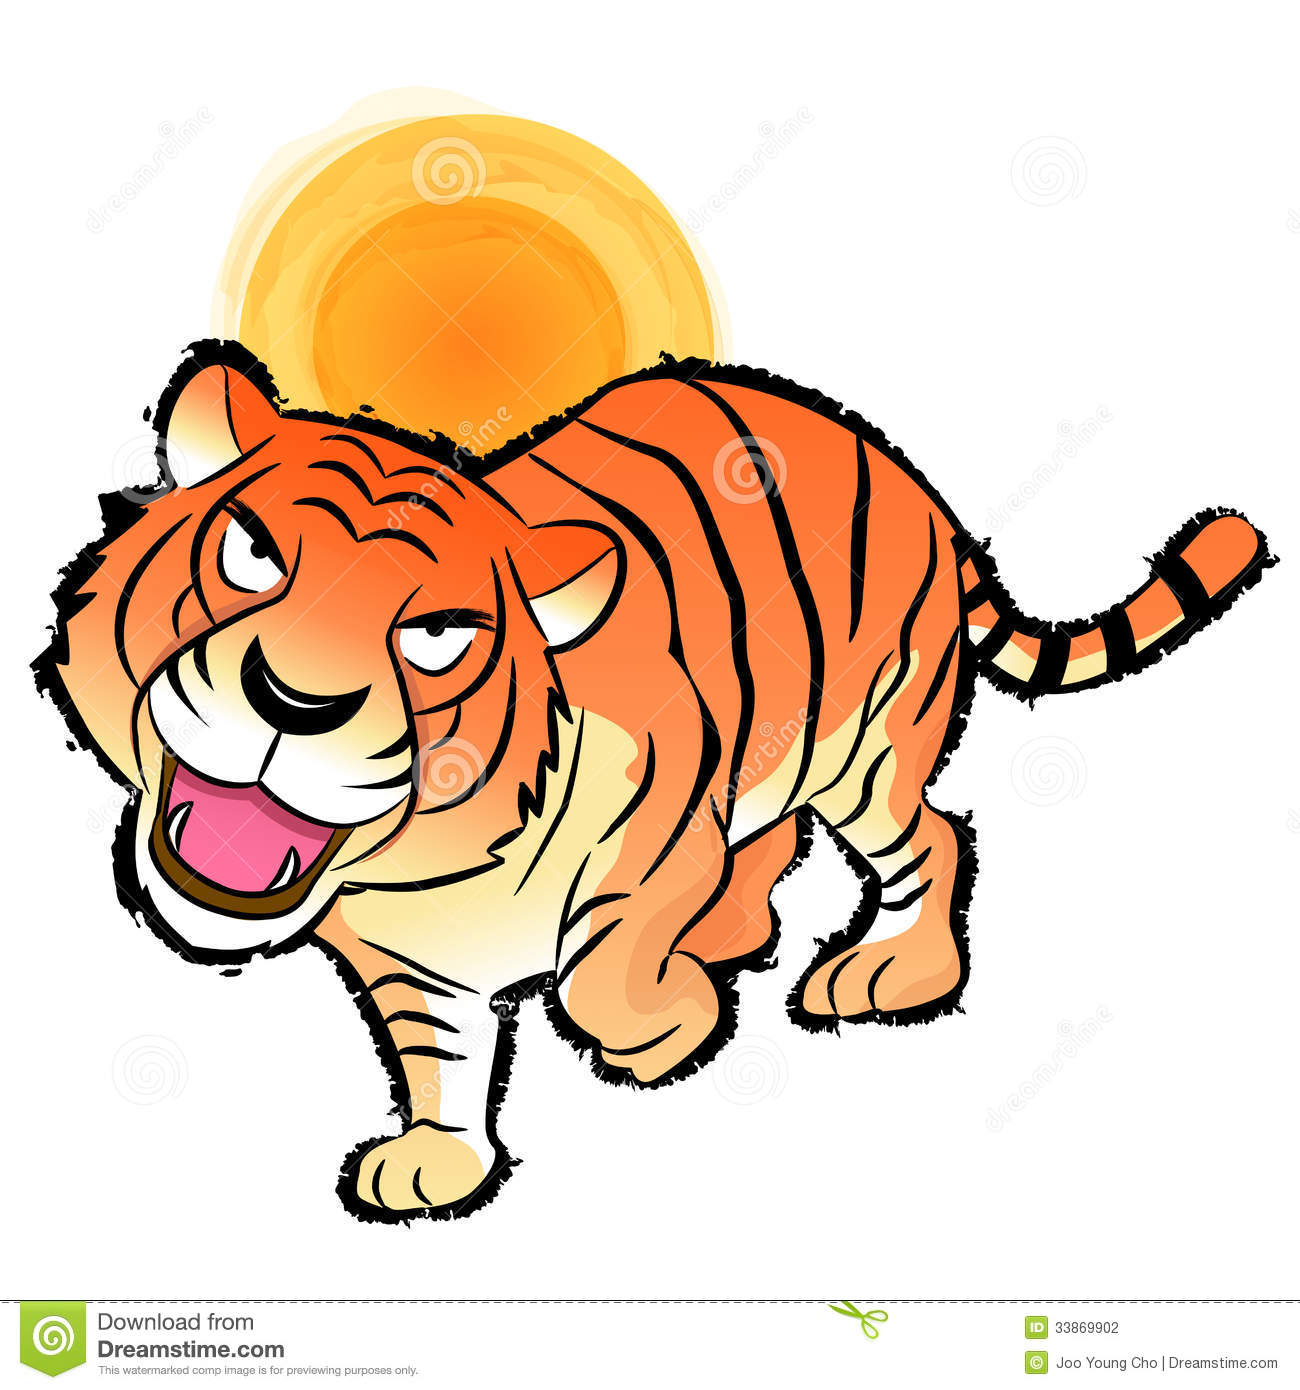 tiger pride clip art - photo #32